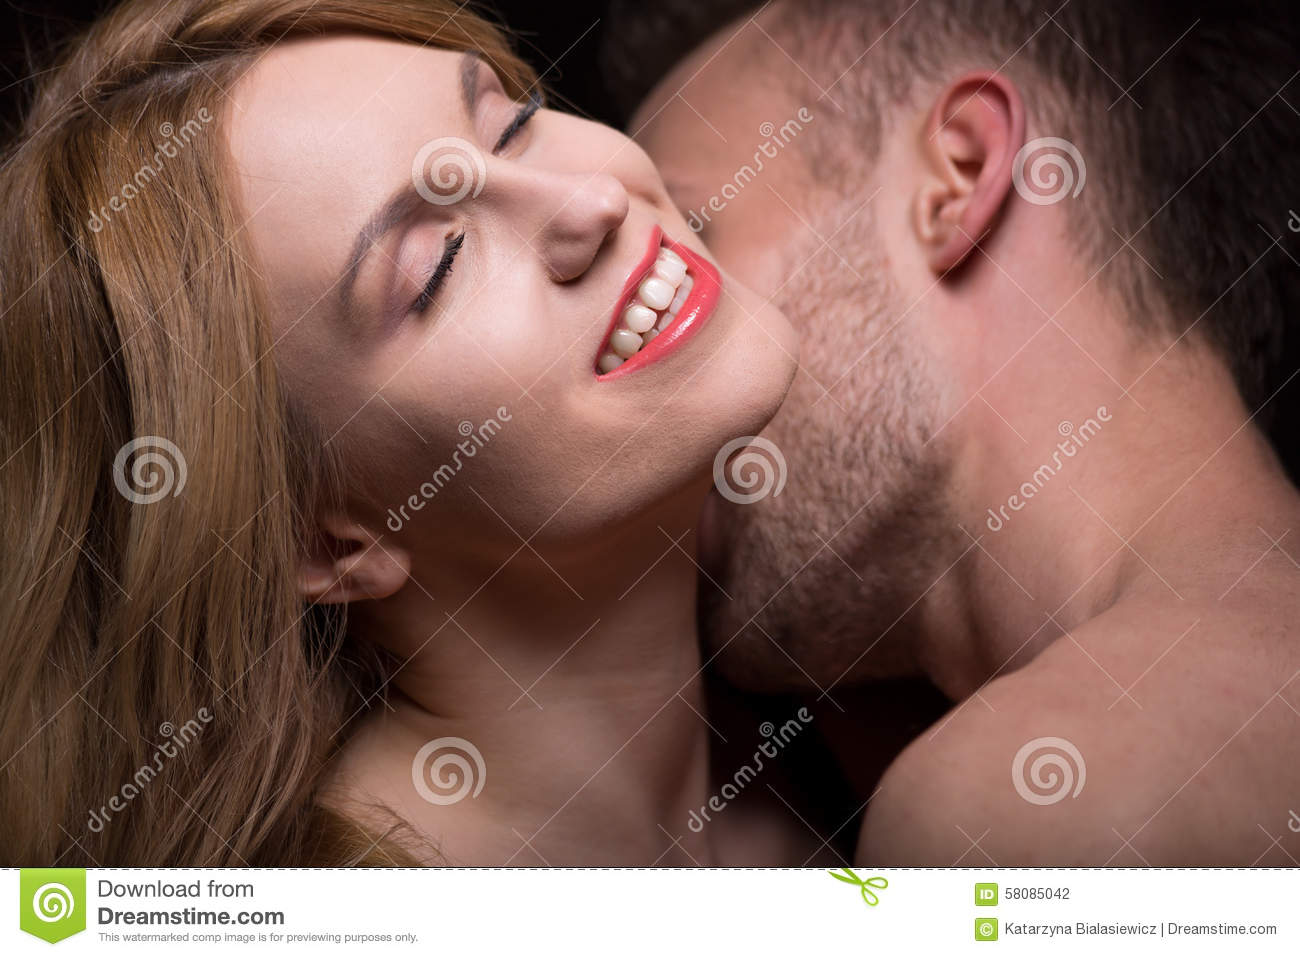 naughty pics of women kissing mens necks